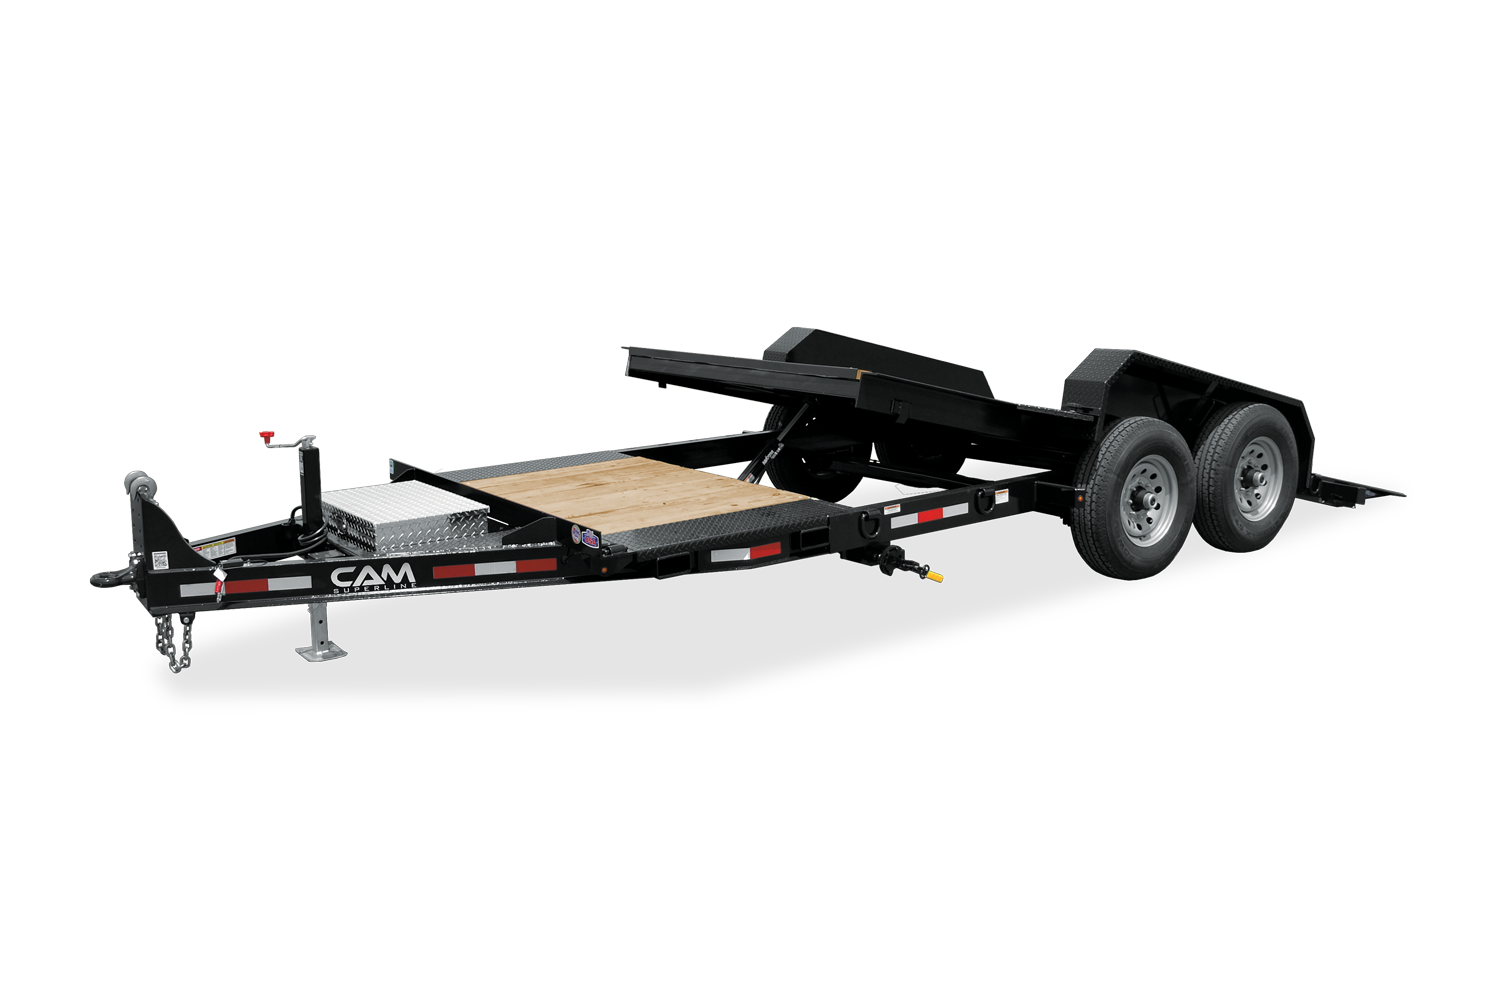 2021 Cam Superline 8 Ton Tilt Trailer Split Deck XW 8.5 x 1